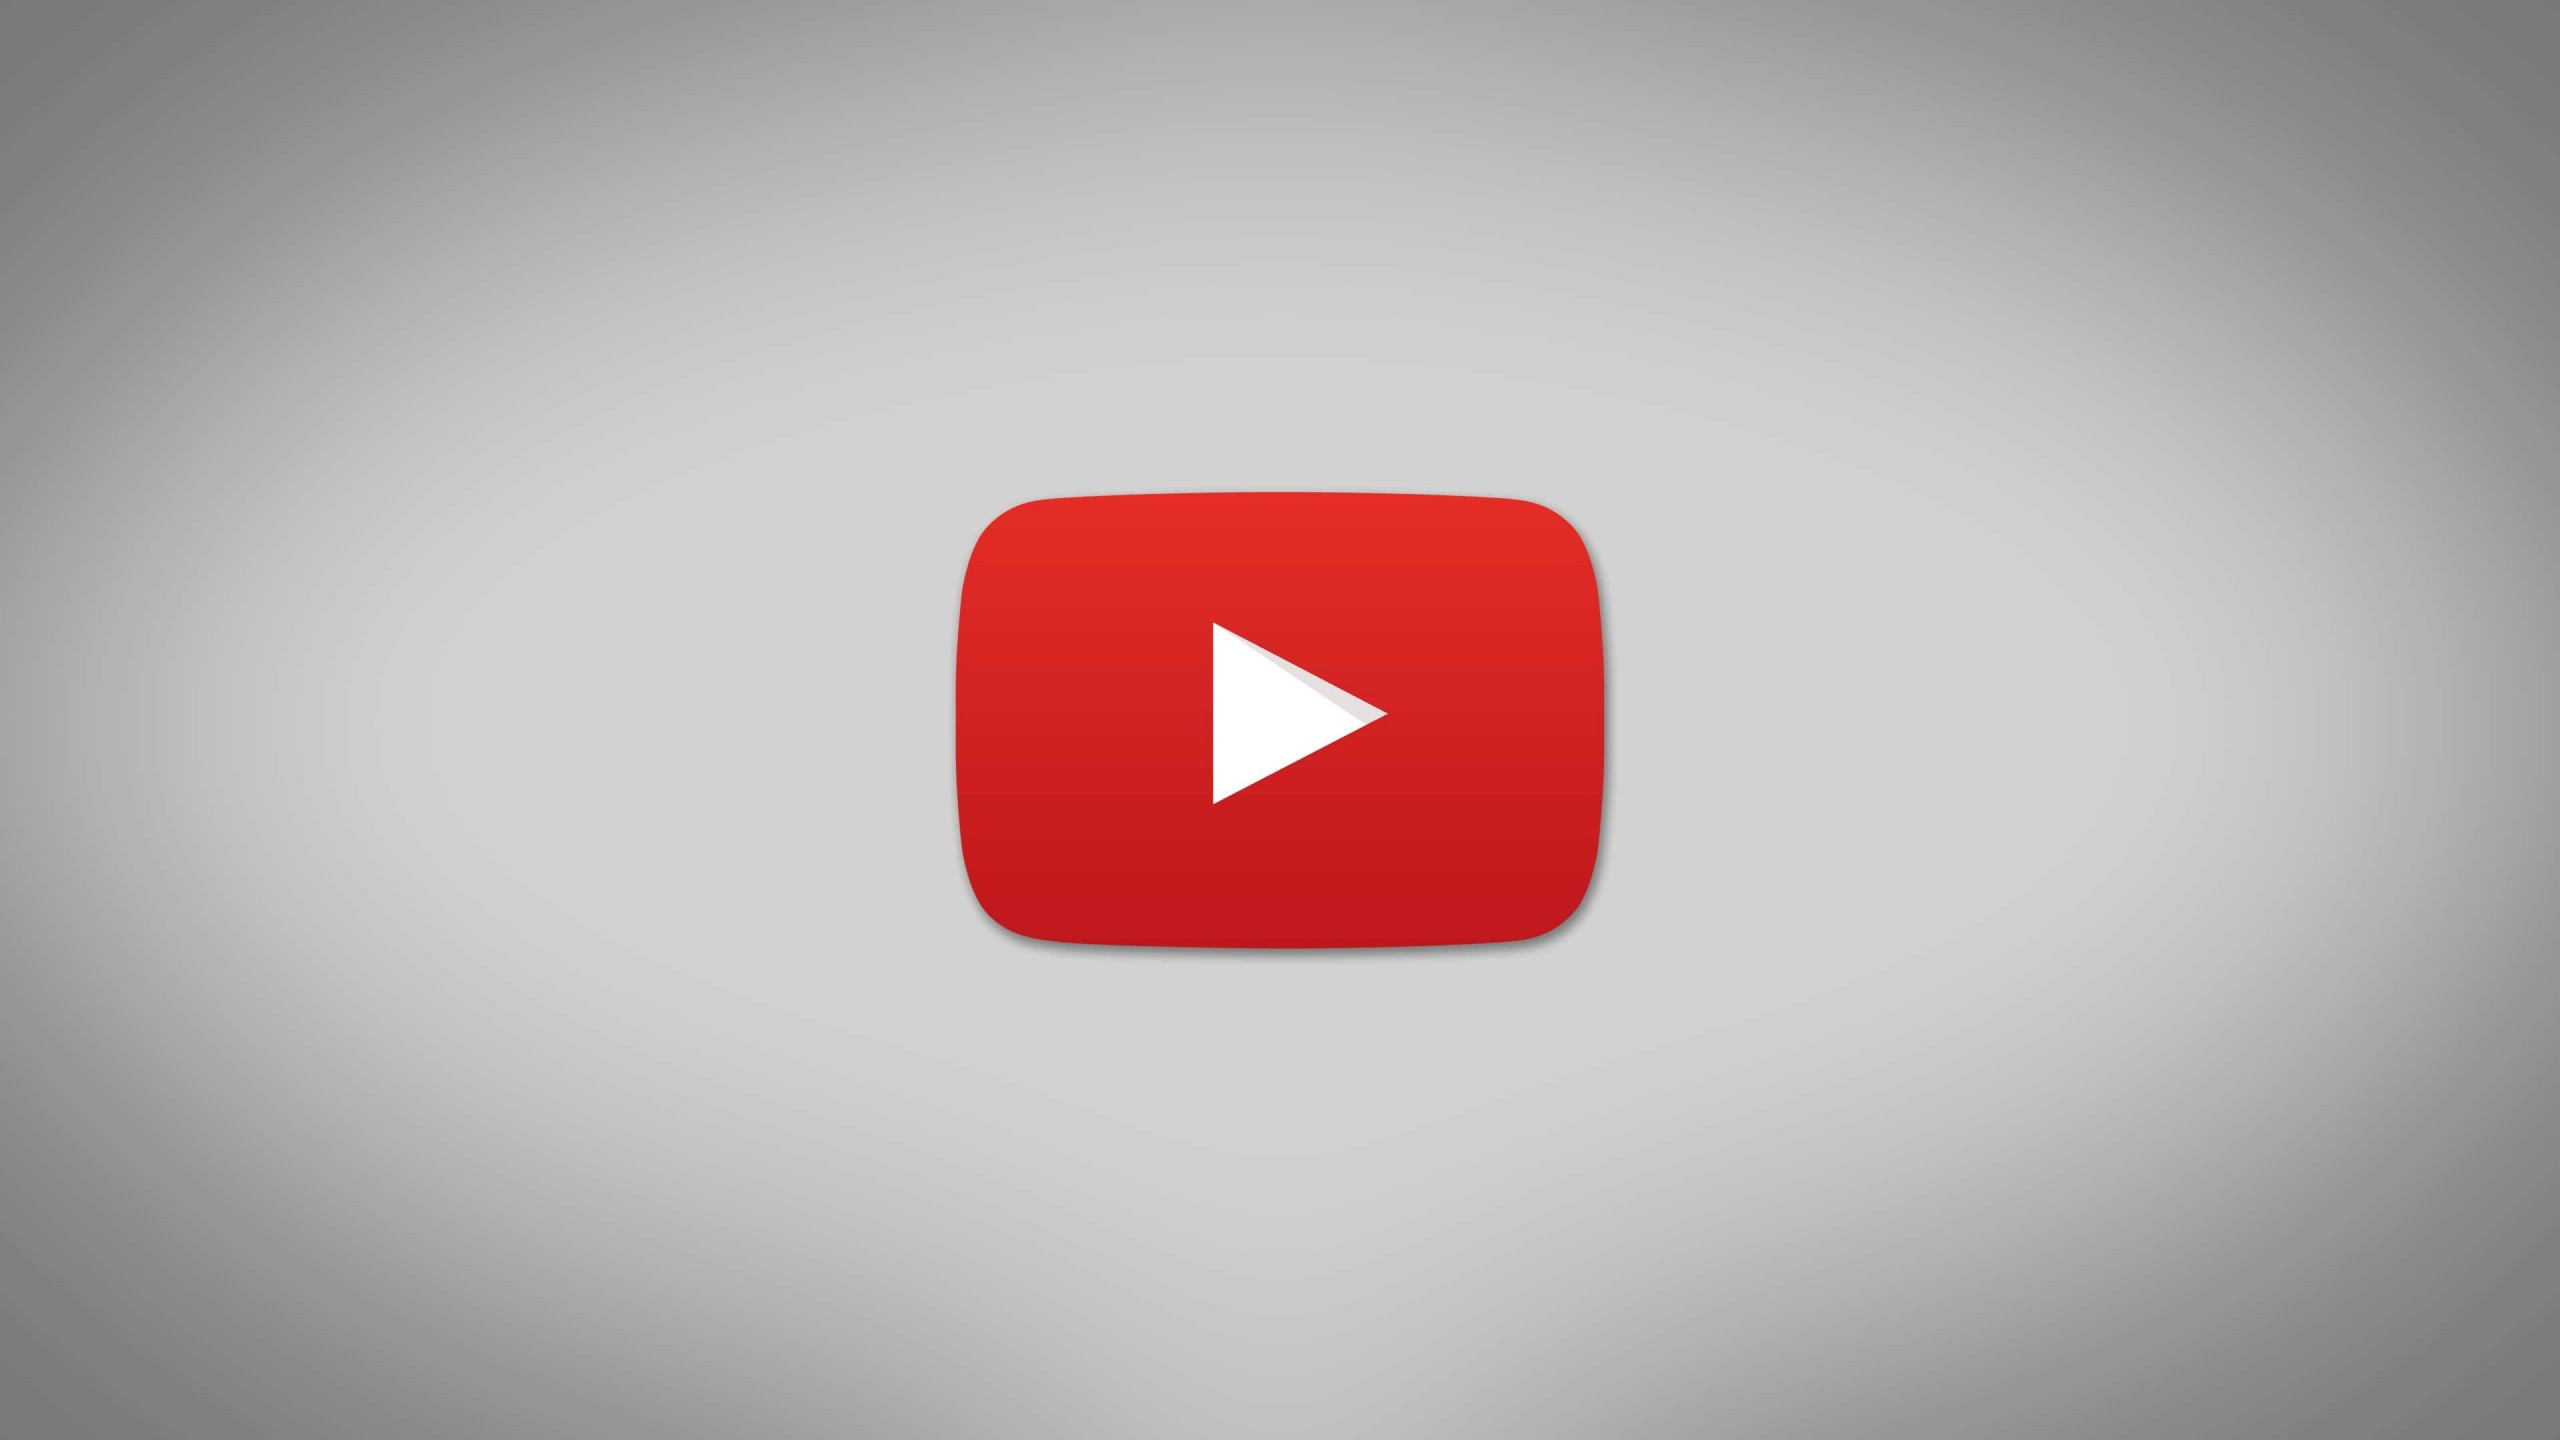 YouTube Logo HD wallpaper for YouTube Channel Art screens ...: https://www.hdwallpapers.net/wallpapers/youtube-logo-wallpaper-for...